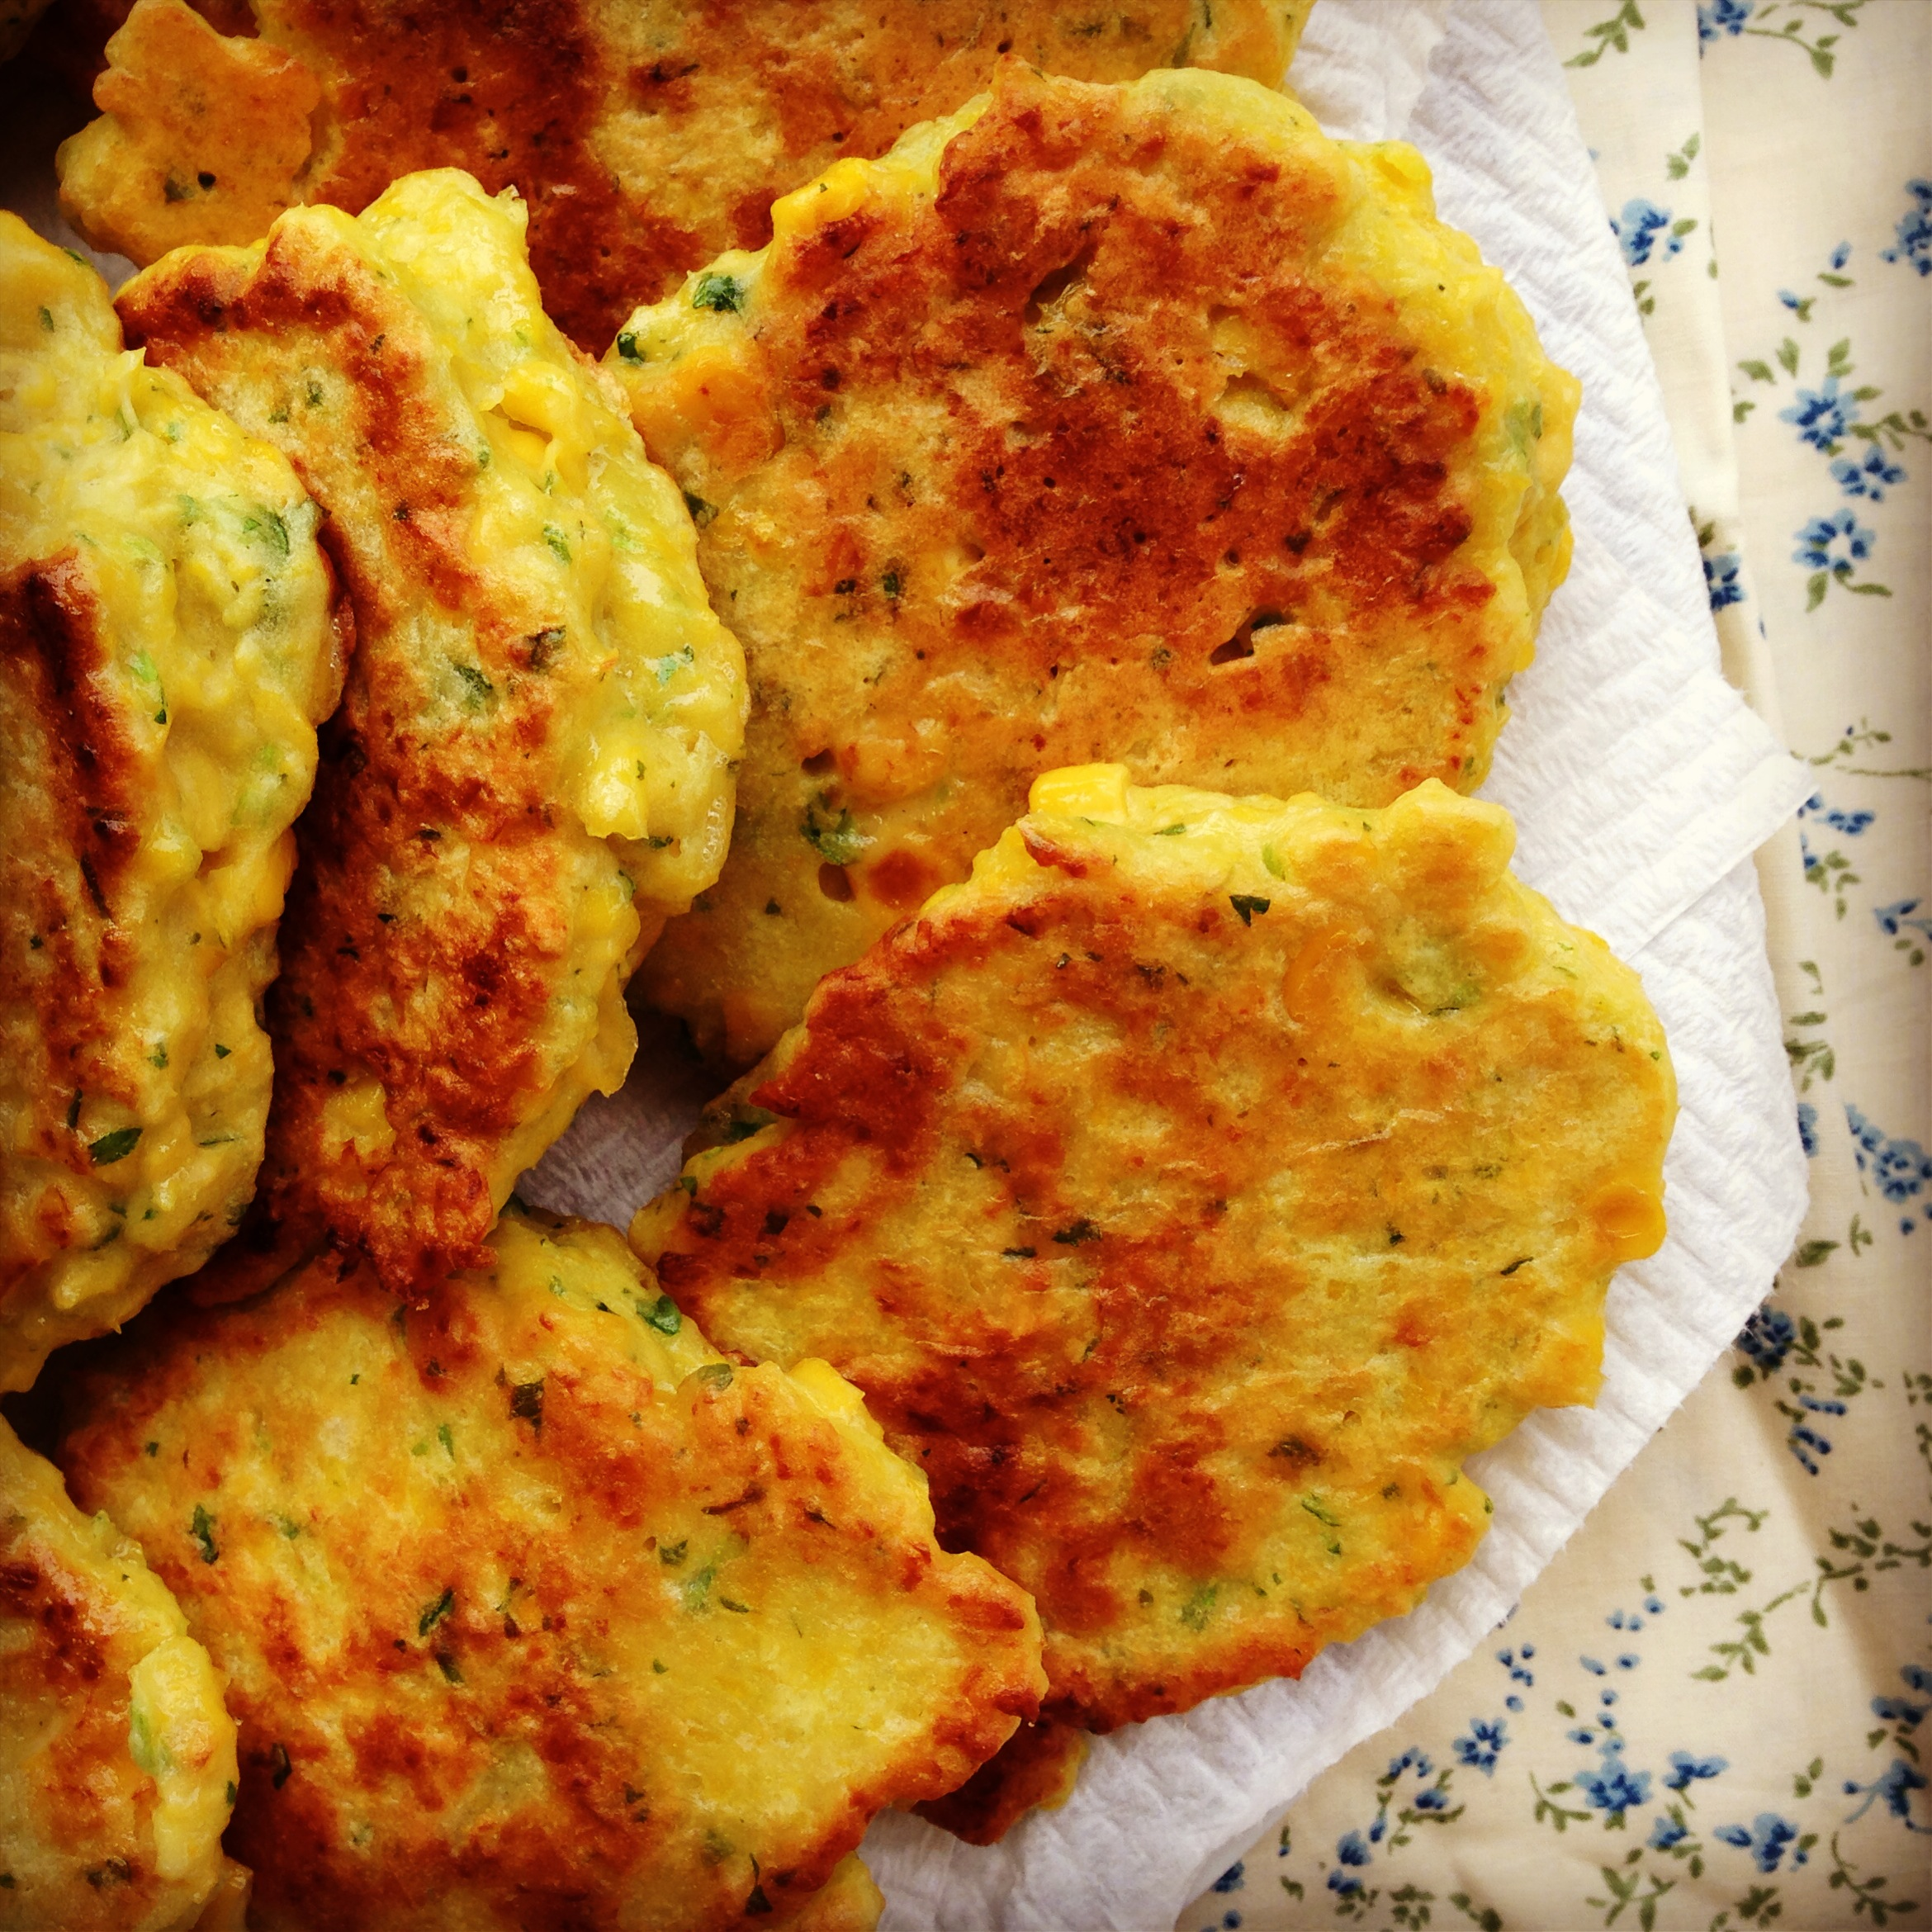 Corn Fritters Made With Pancake Mix